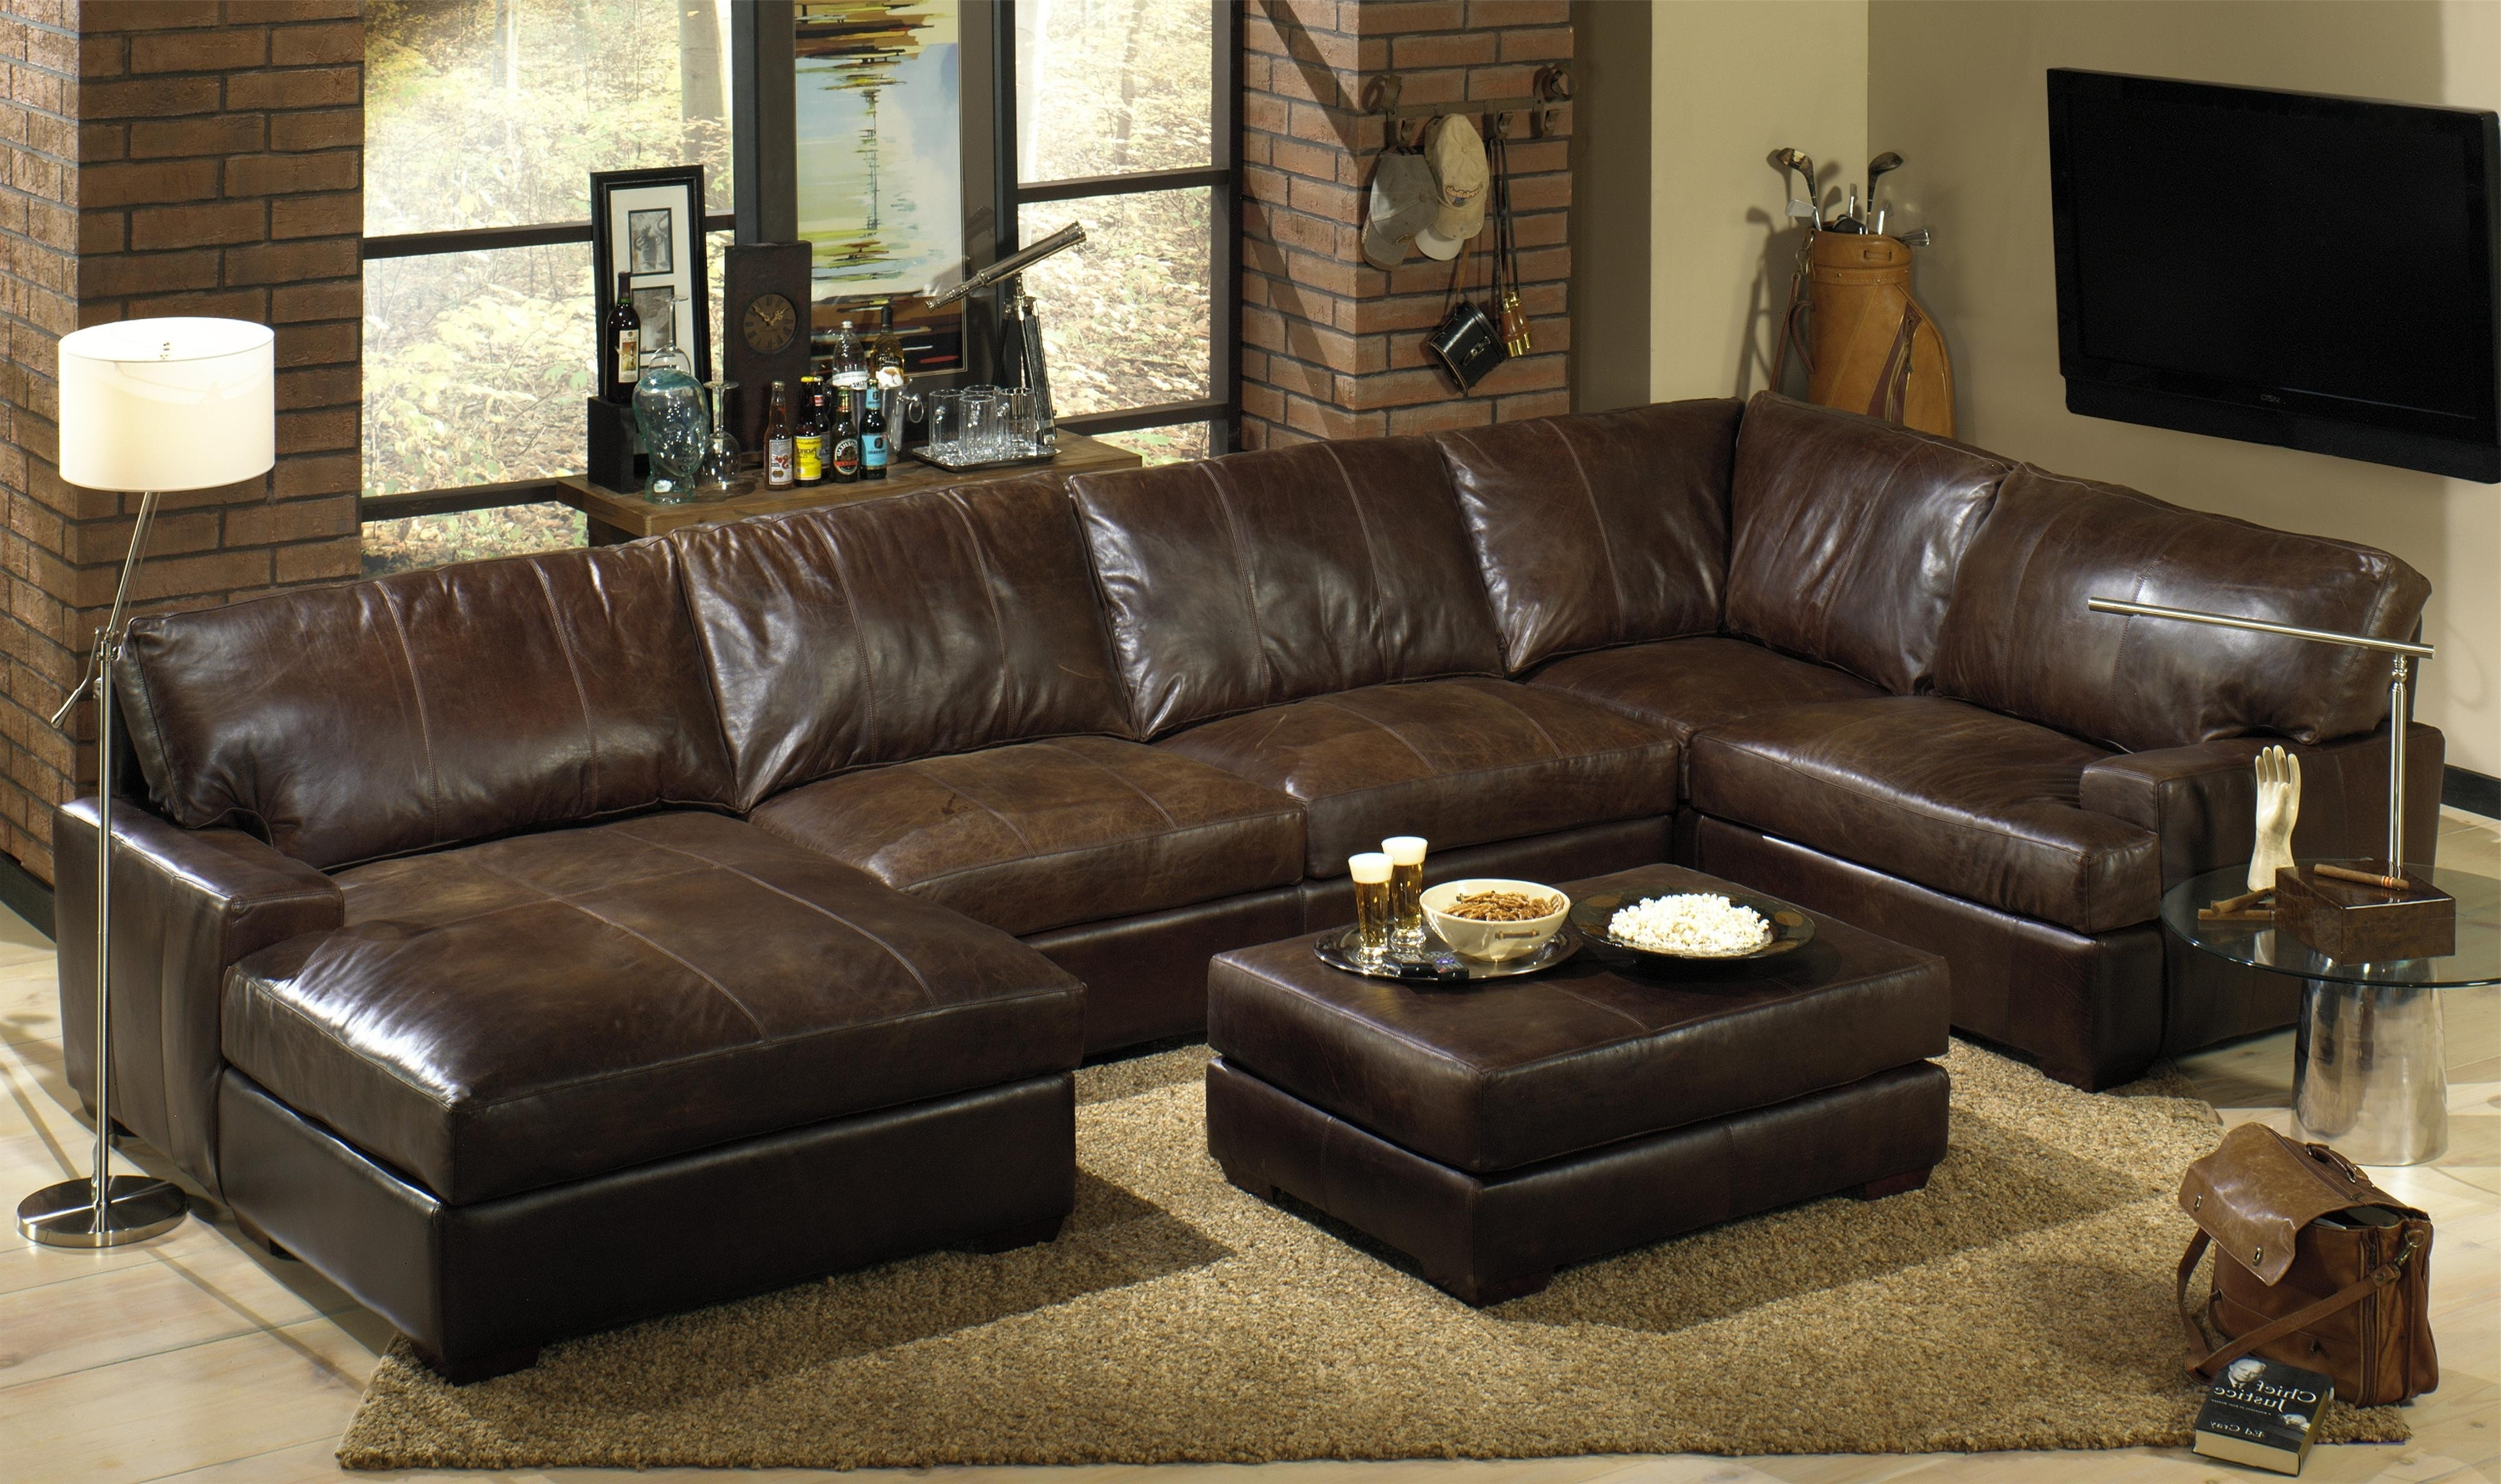 Fashionable Chocolate Brown Sectional Sofas In Luxury Brown Sectional Sofa With Chaise – Buildsimplehome (View 7 of 15)